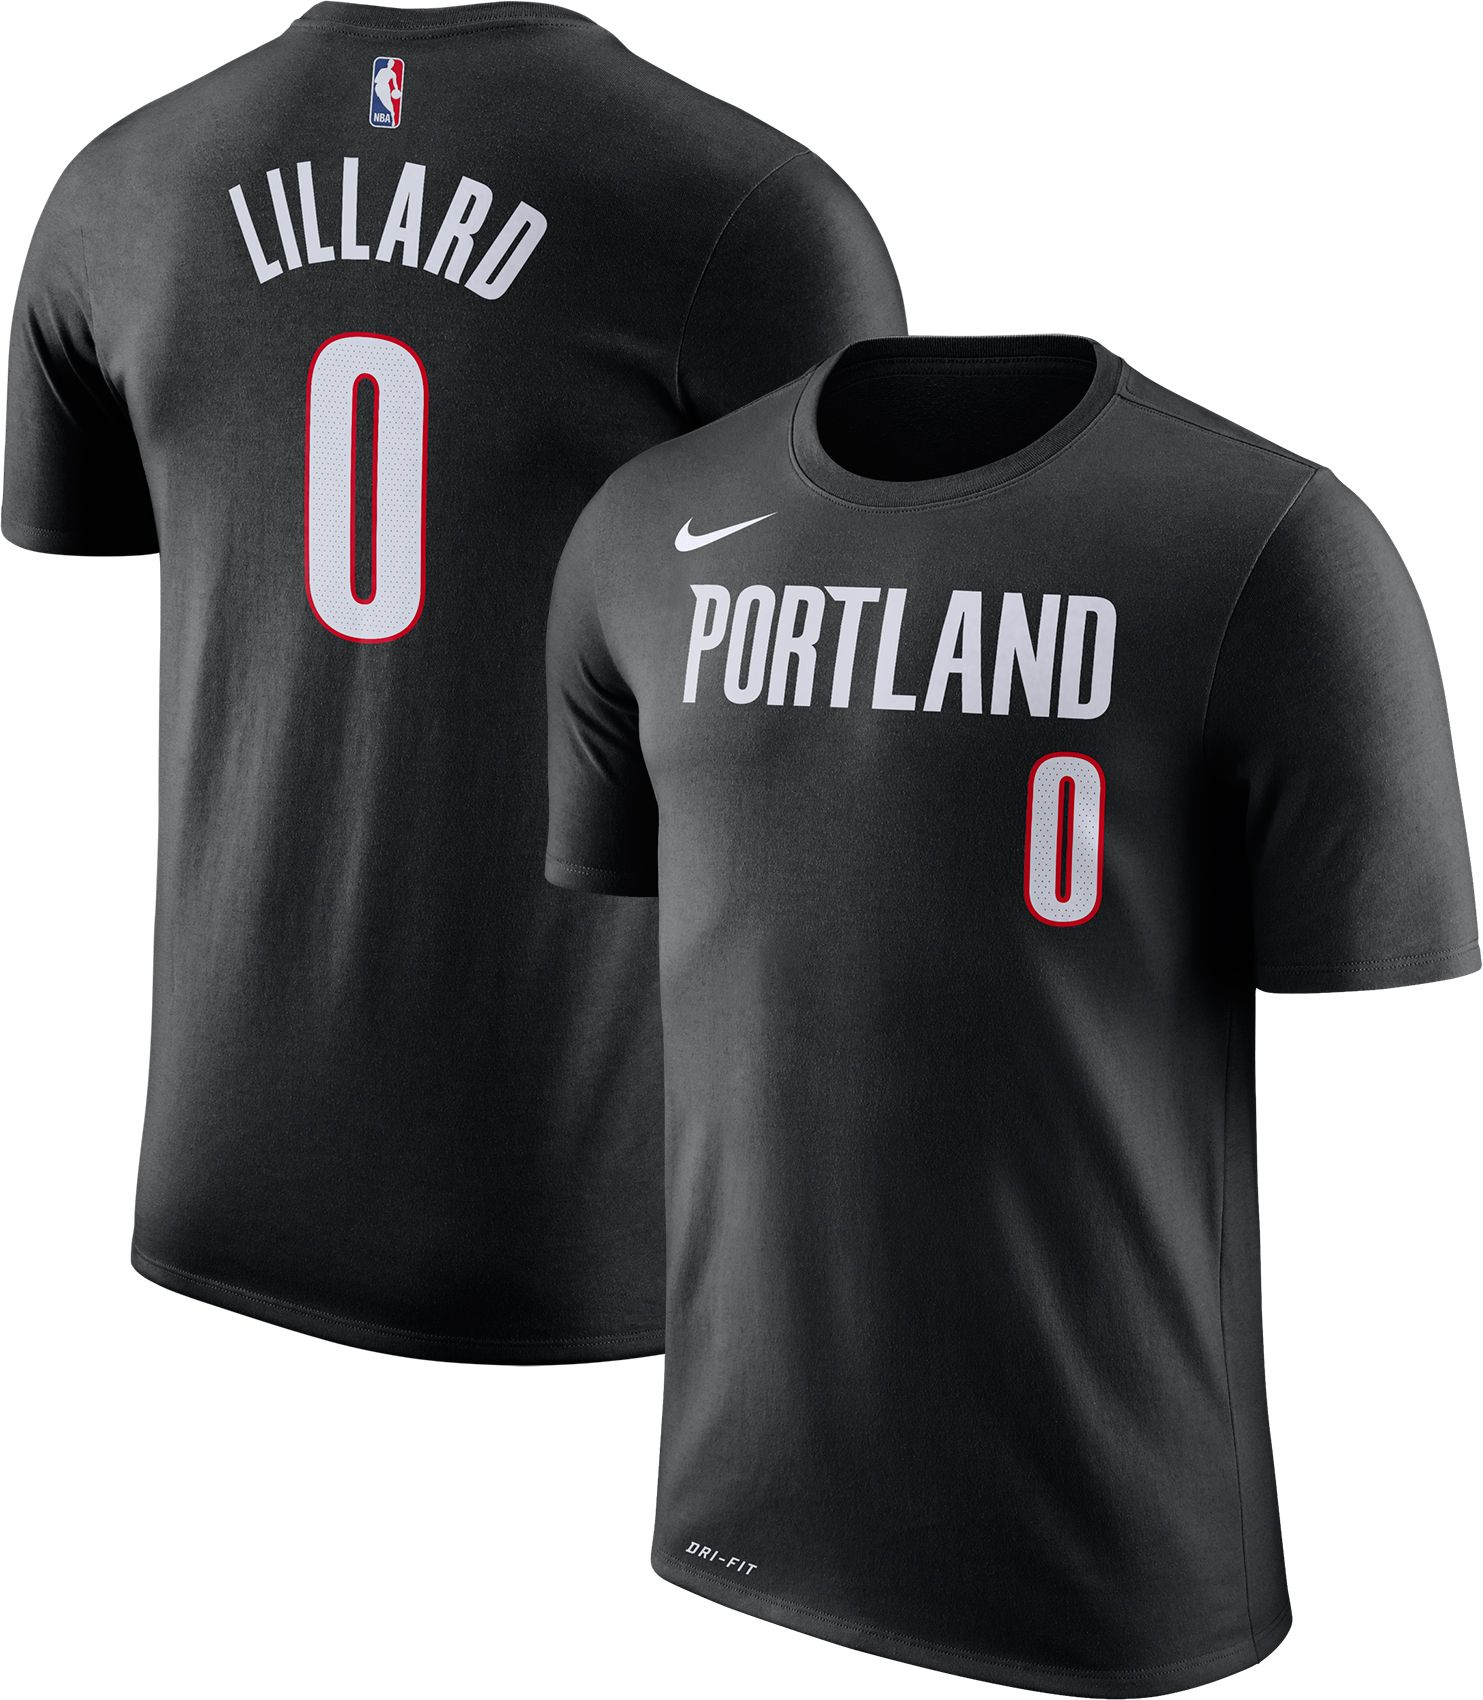 cd05e87ddde2 ... new arrivals nike mens portland trail blazers damian lillard 0 dri fit  black t shirt c7b5d